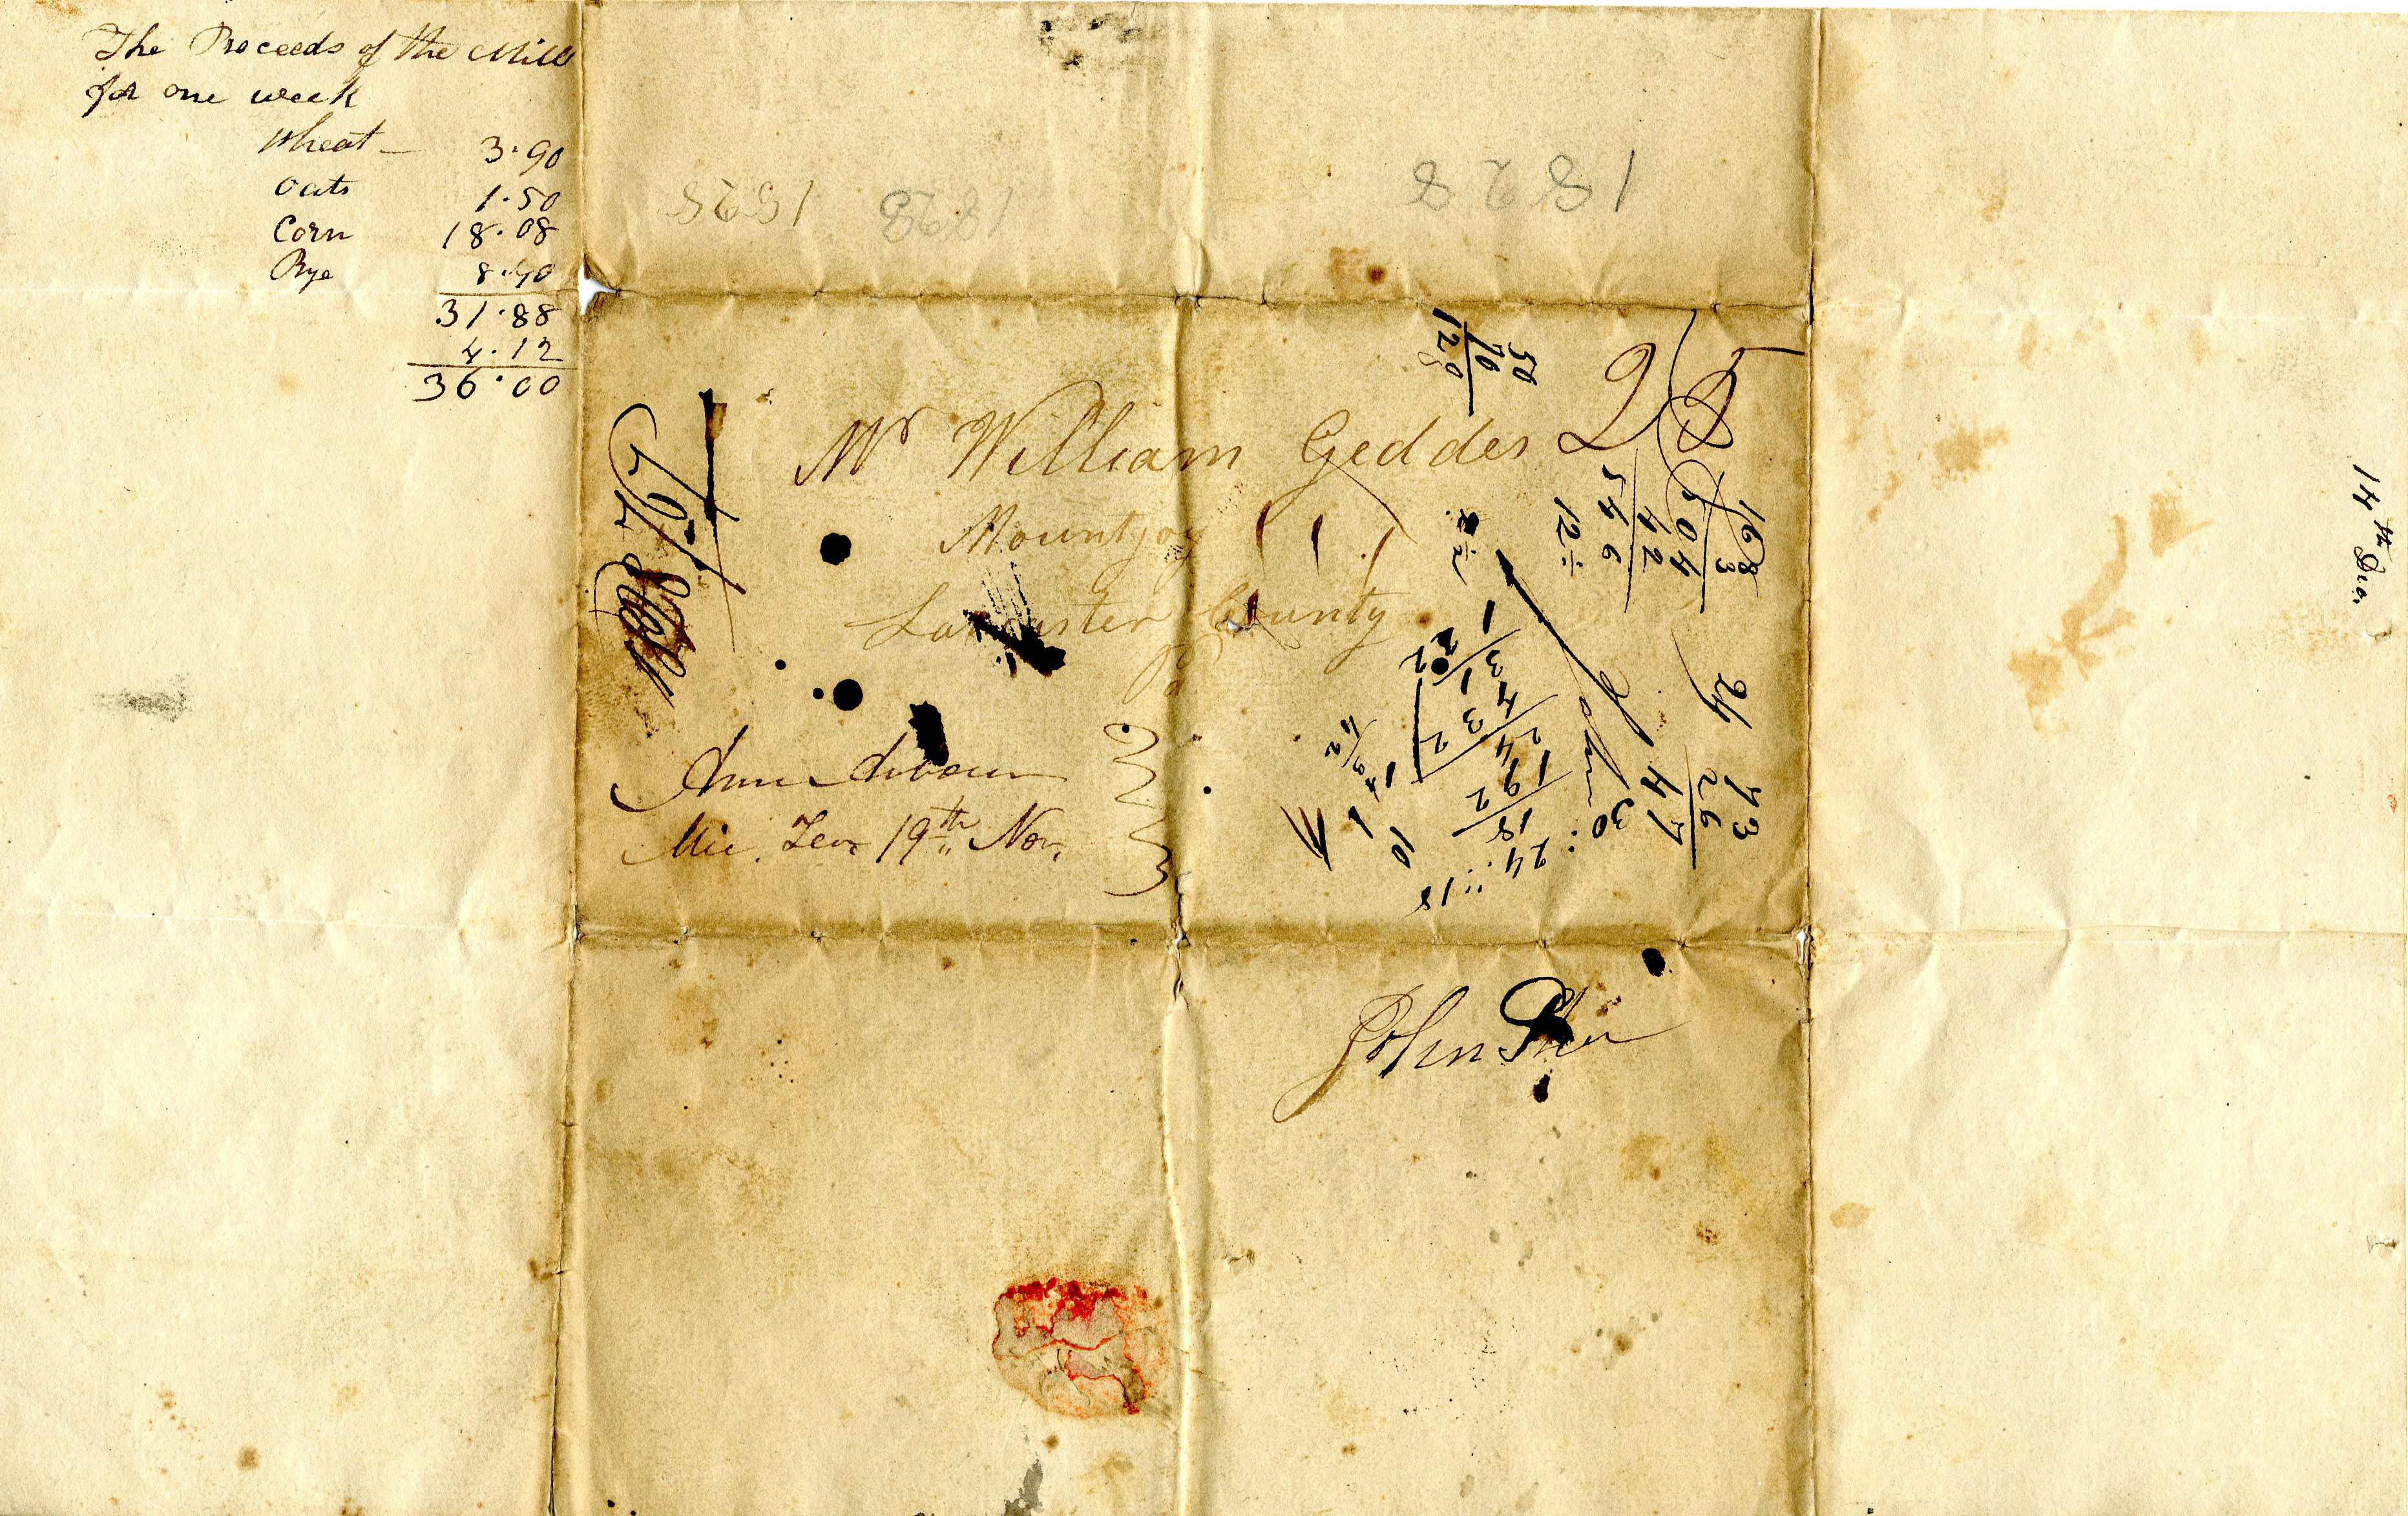 Letter From John Geddes to William Geddes, November 18, 1828  image